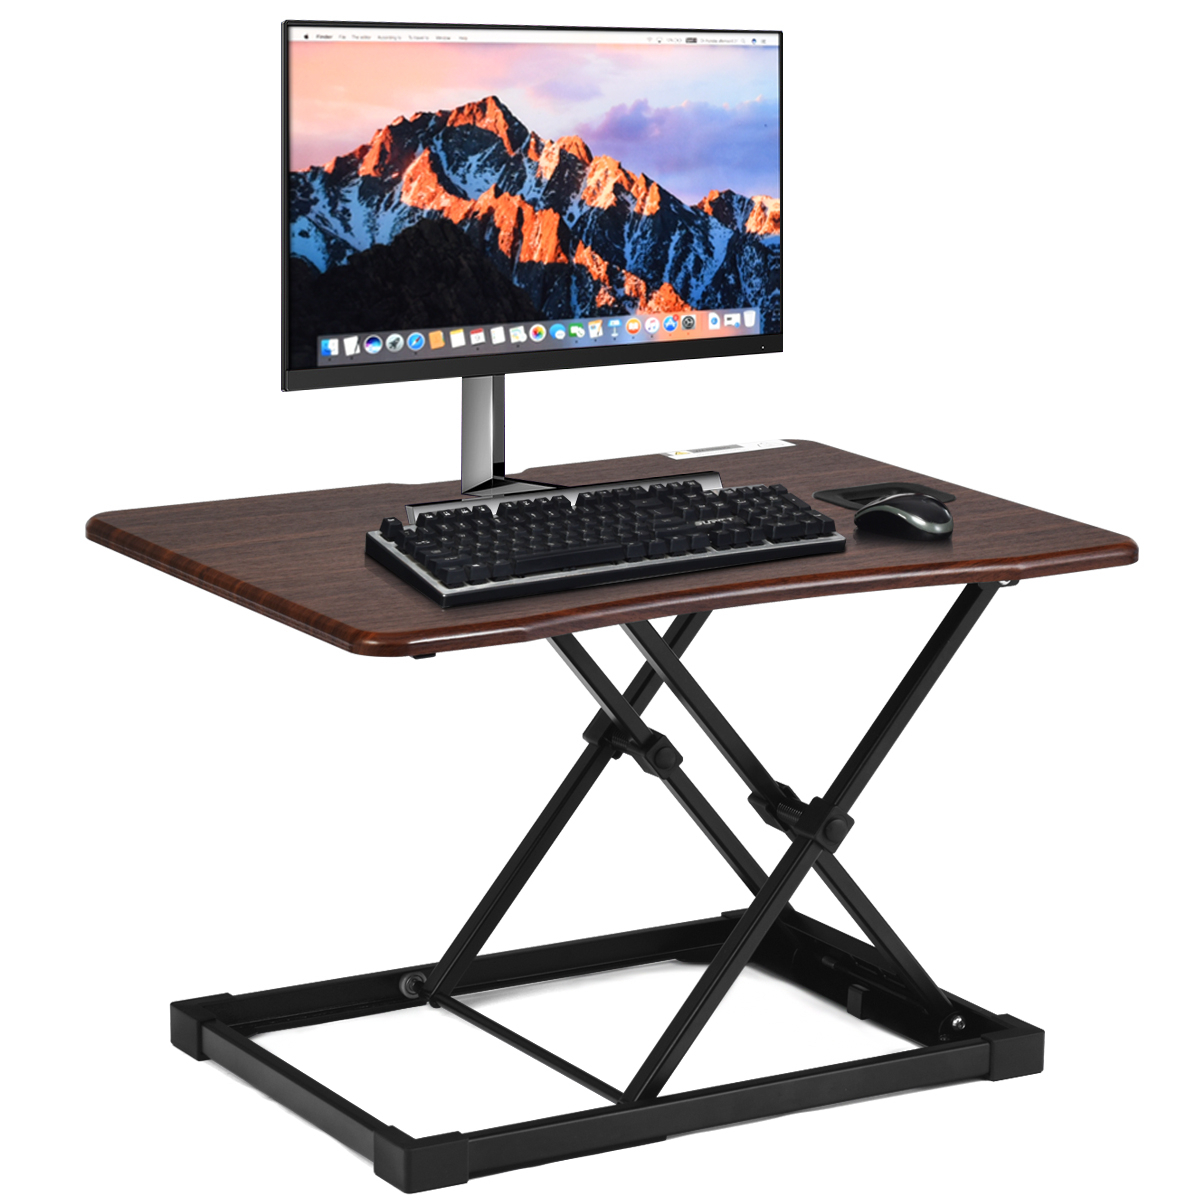 Costway Height Adjustable Standing Desk Coverter Sit to Stand Computer Desk